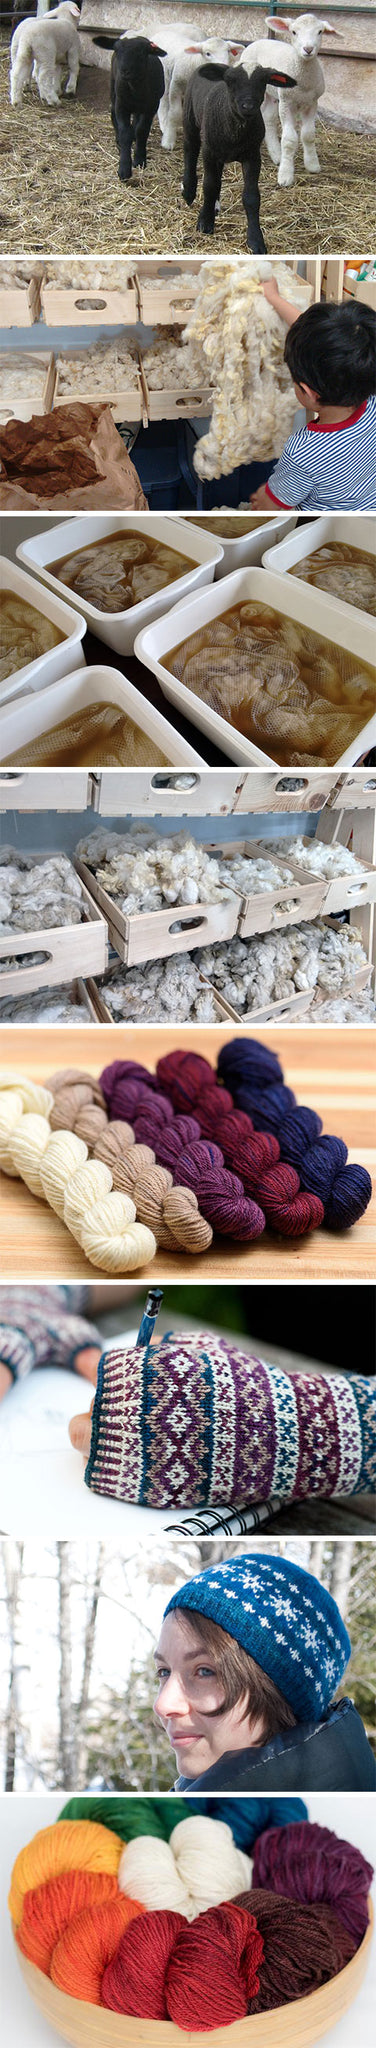 Norbouillet: From sheep to yarn